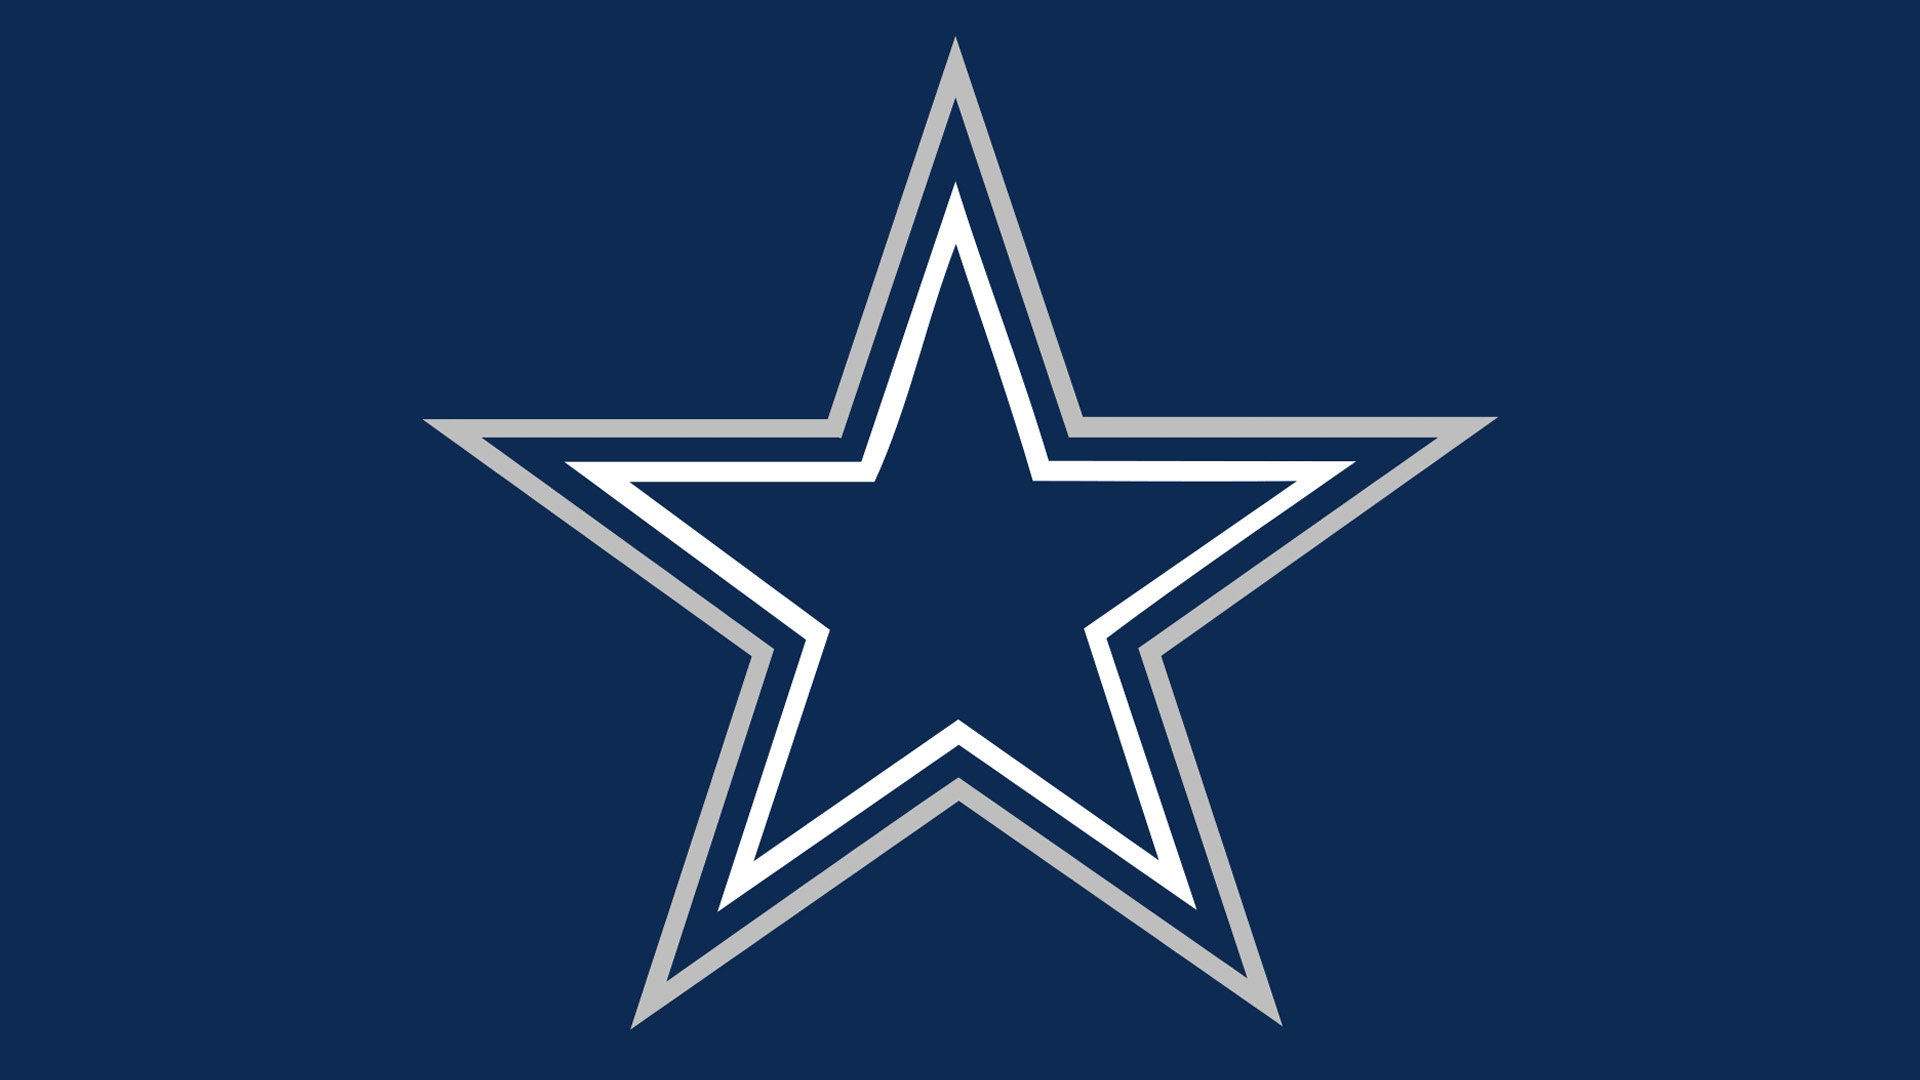 Download full hd 1080p Dallas Cowboys PC wallpaper ID:101594 for free